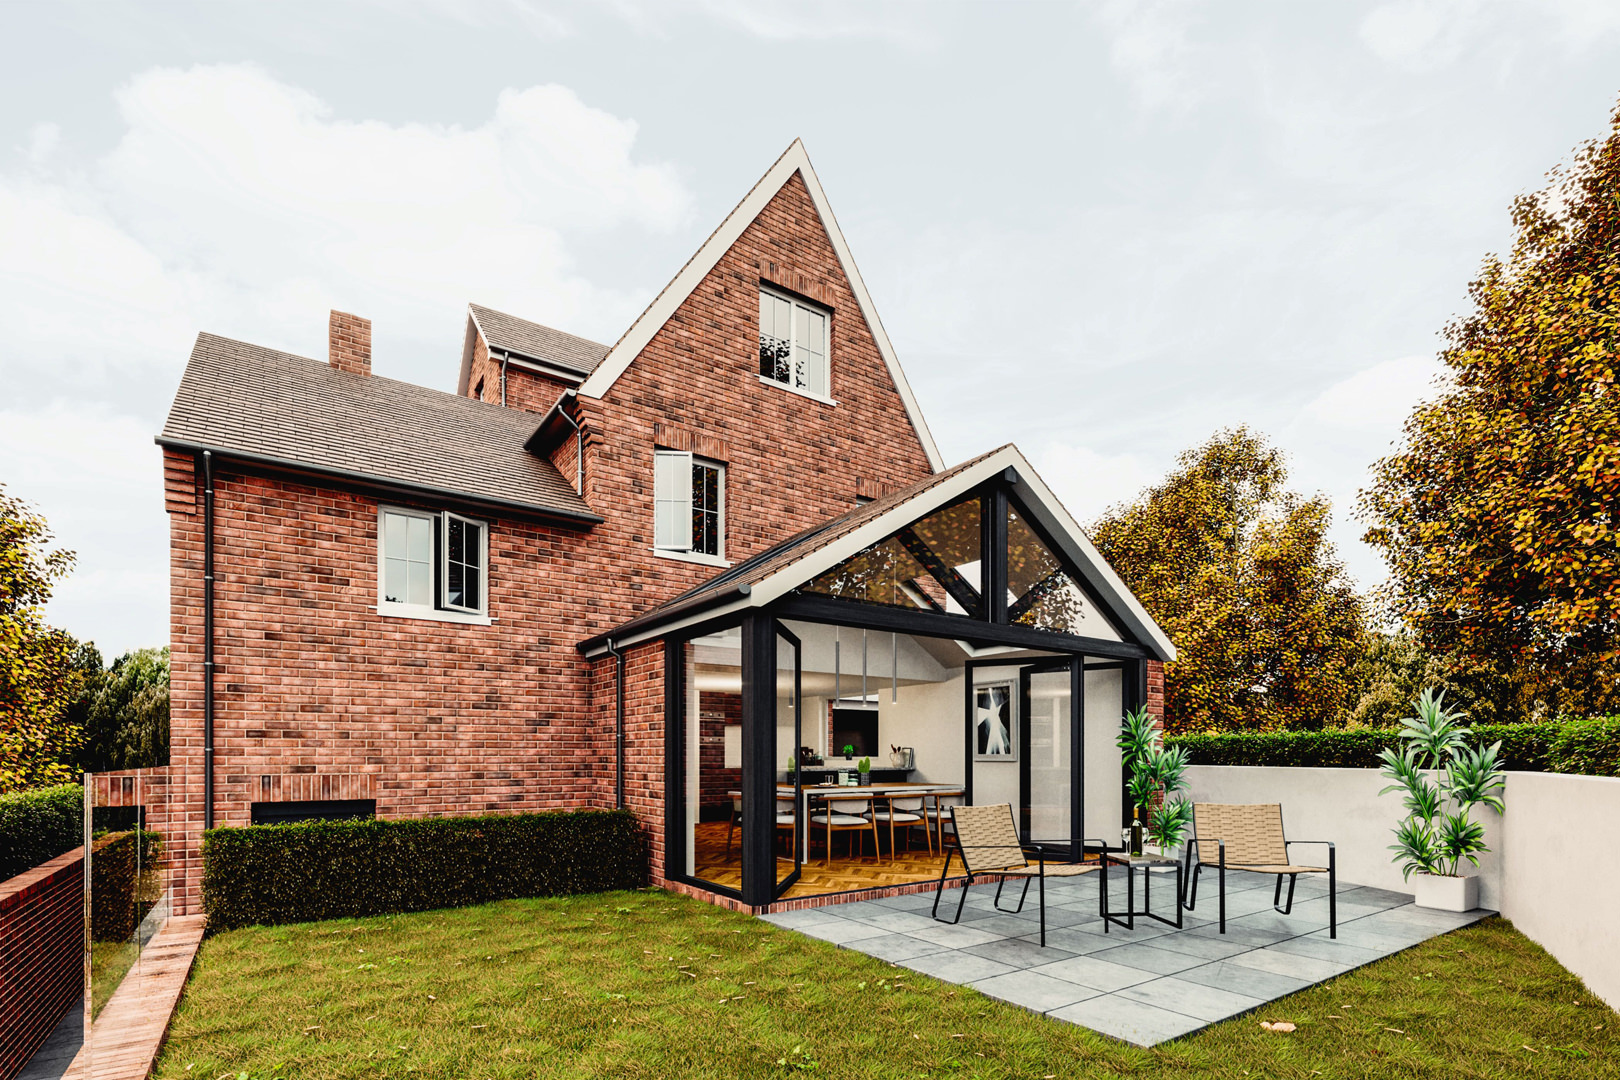 Single-storey rear extension and loft conversion in a Bedfordshire woodland setting created a new 'inside-outside' space and an extra entertaining room clad with black stained weather boarding